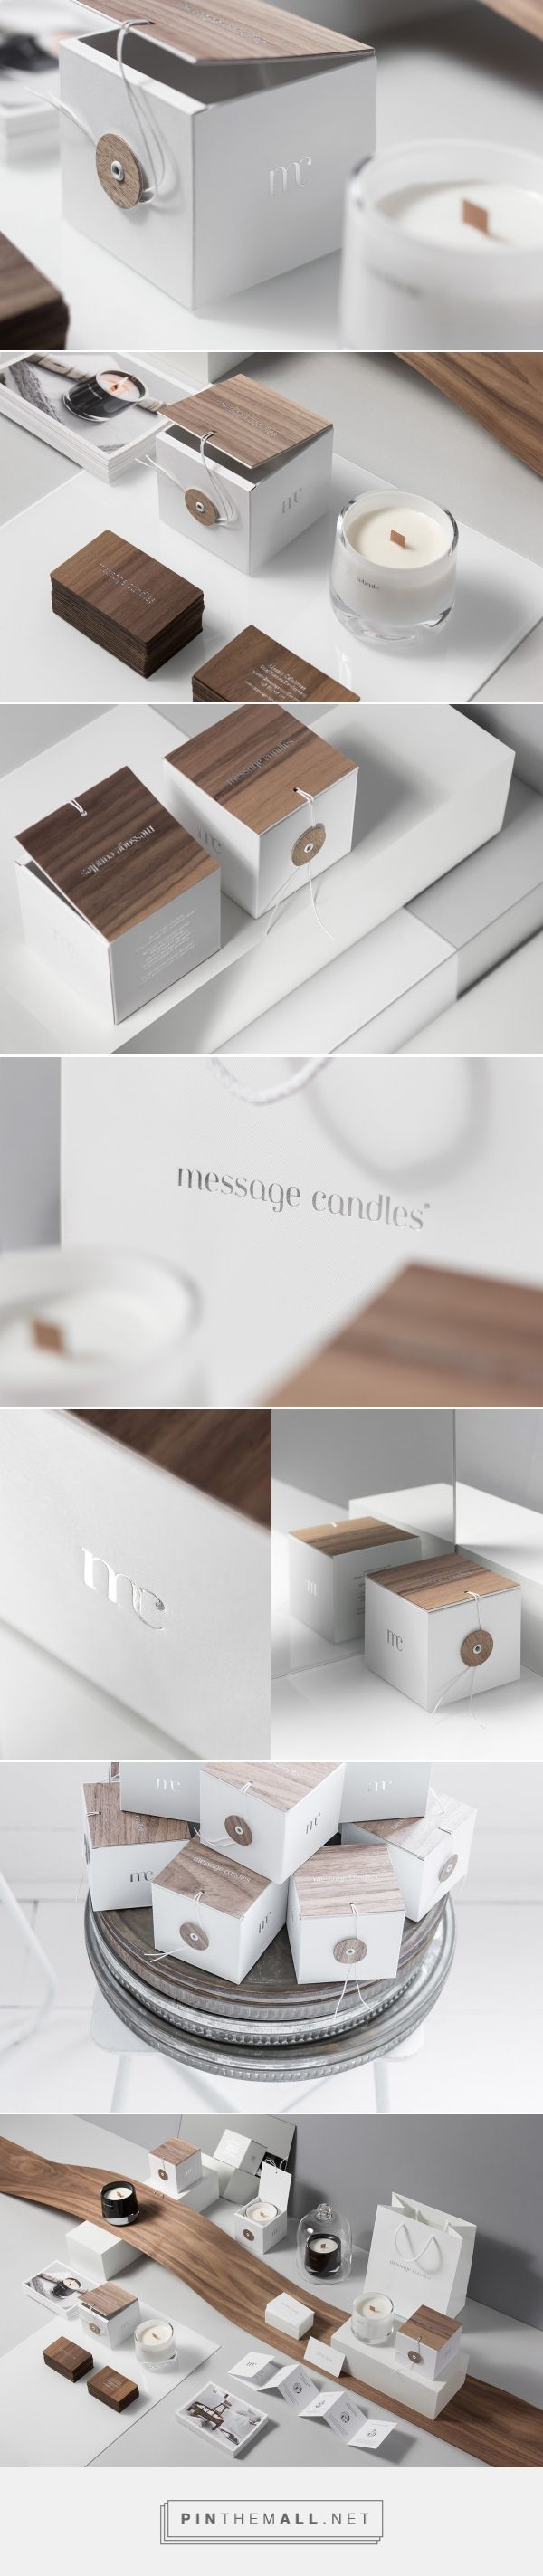 Message candles by For brands .